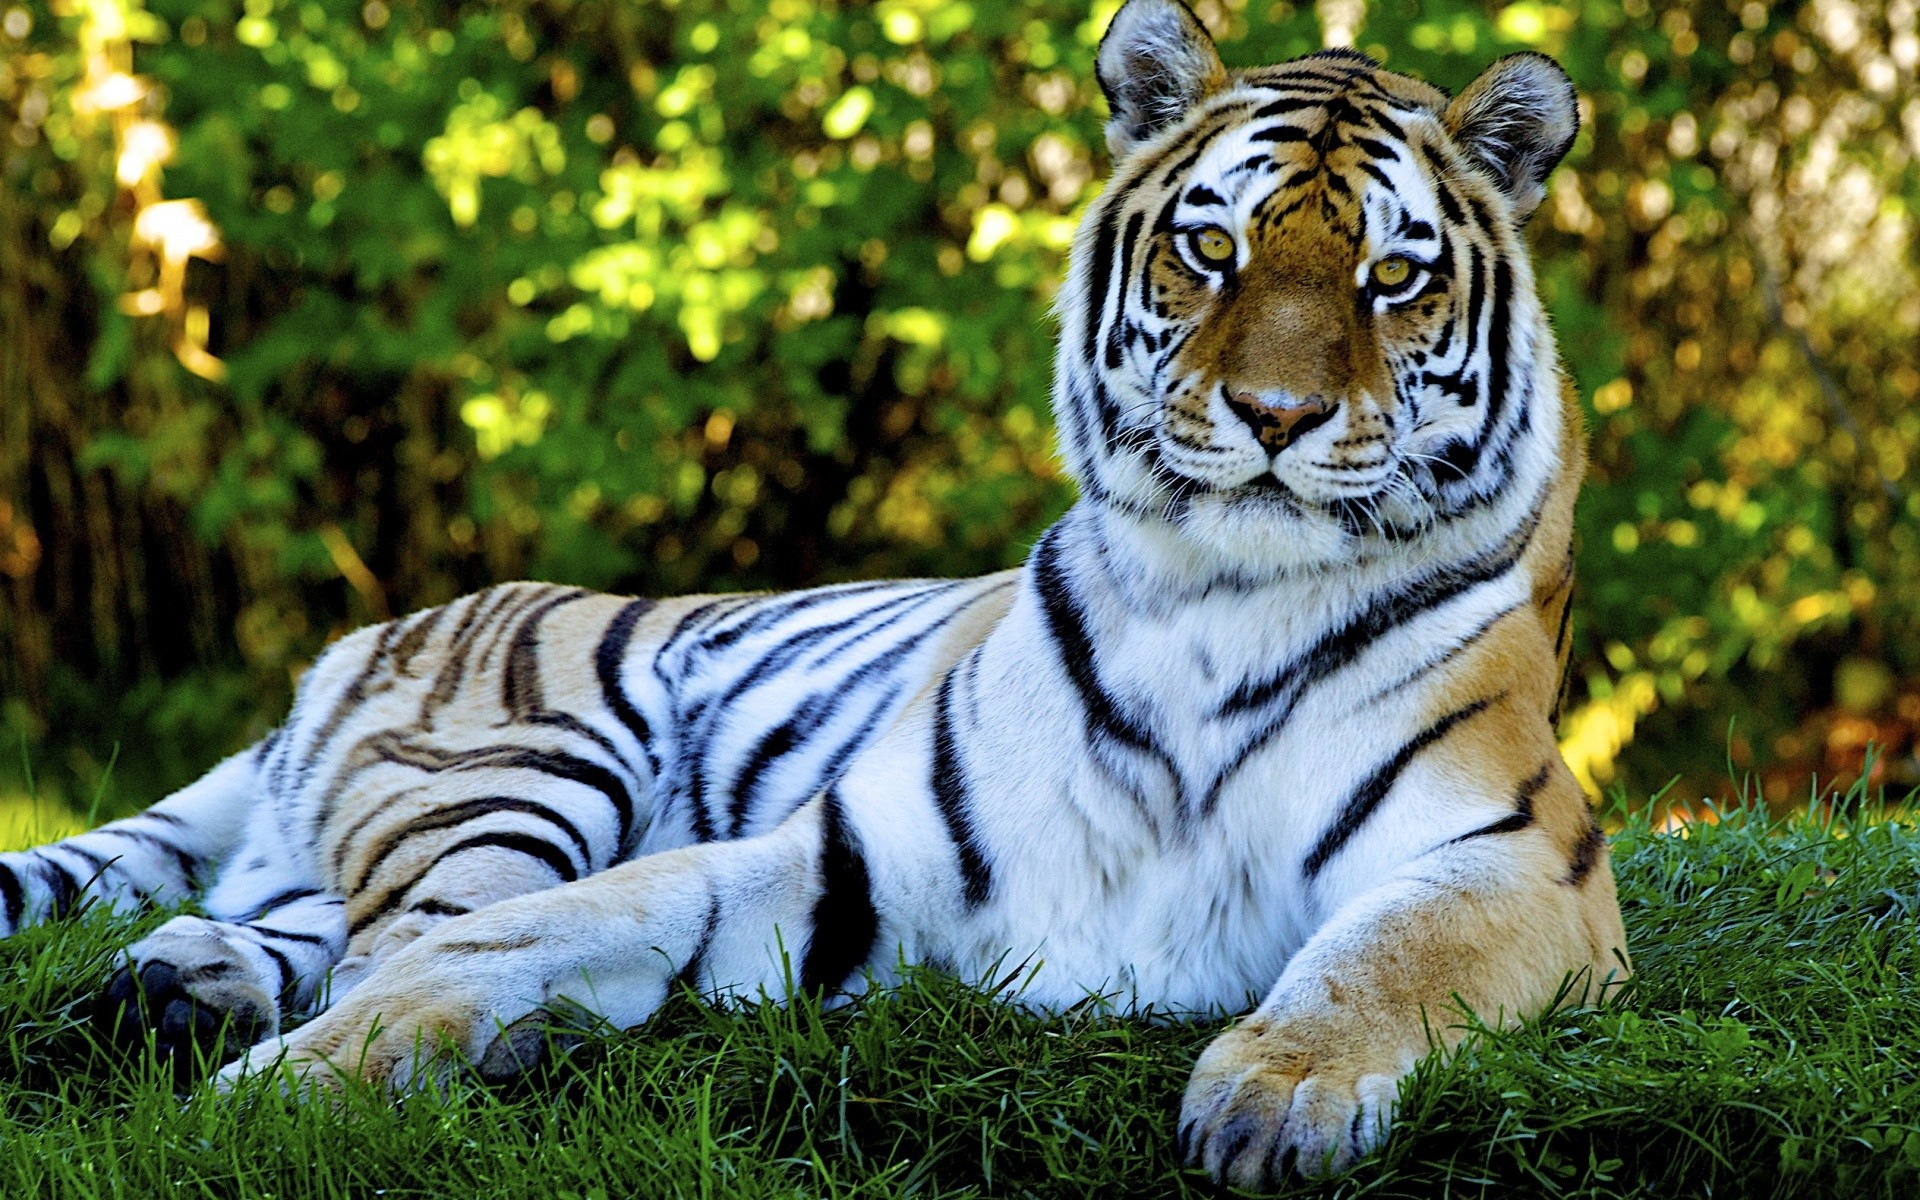 Animated Nature Wallpapers For Desktop – Tiger desktop backgrounds – Tiger desktop  backgrounds Wallpaper